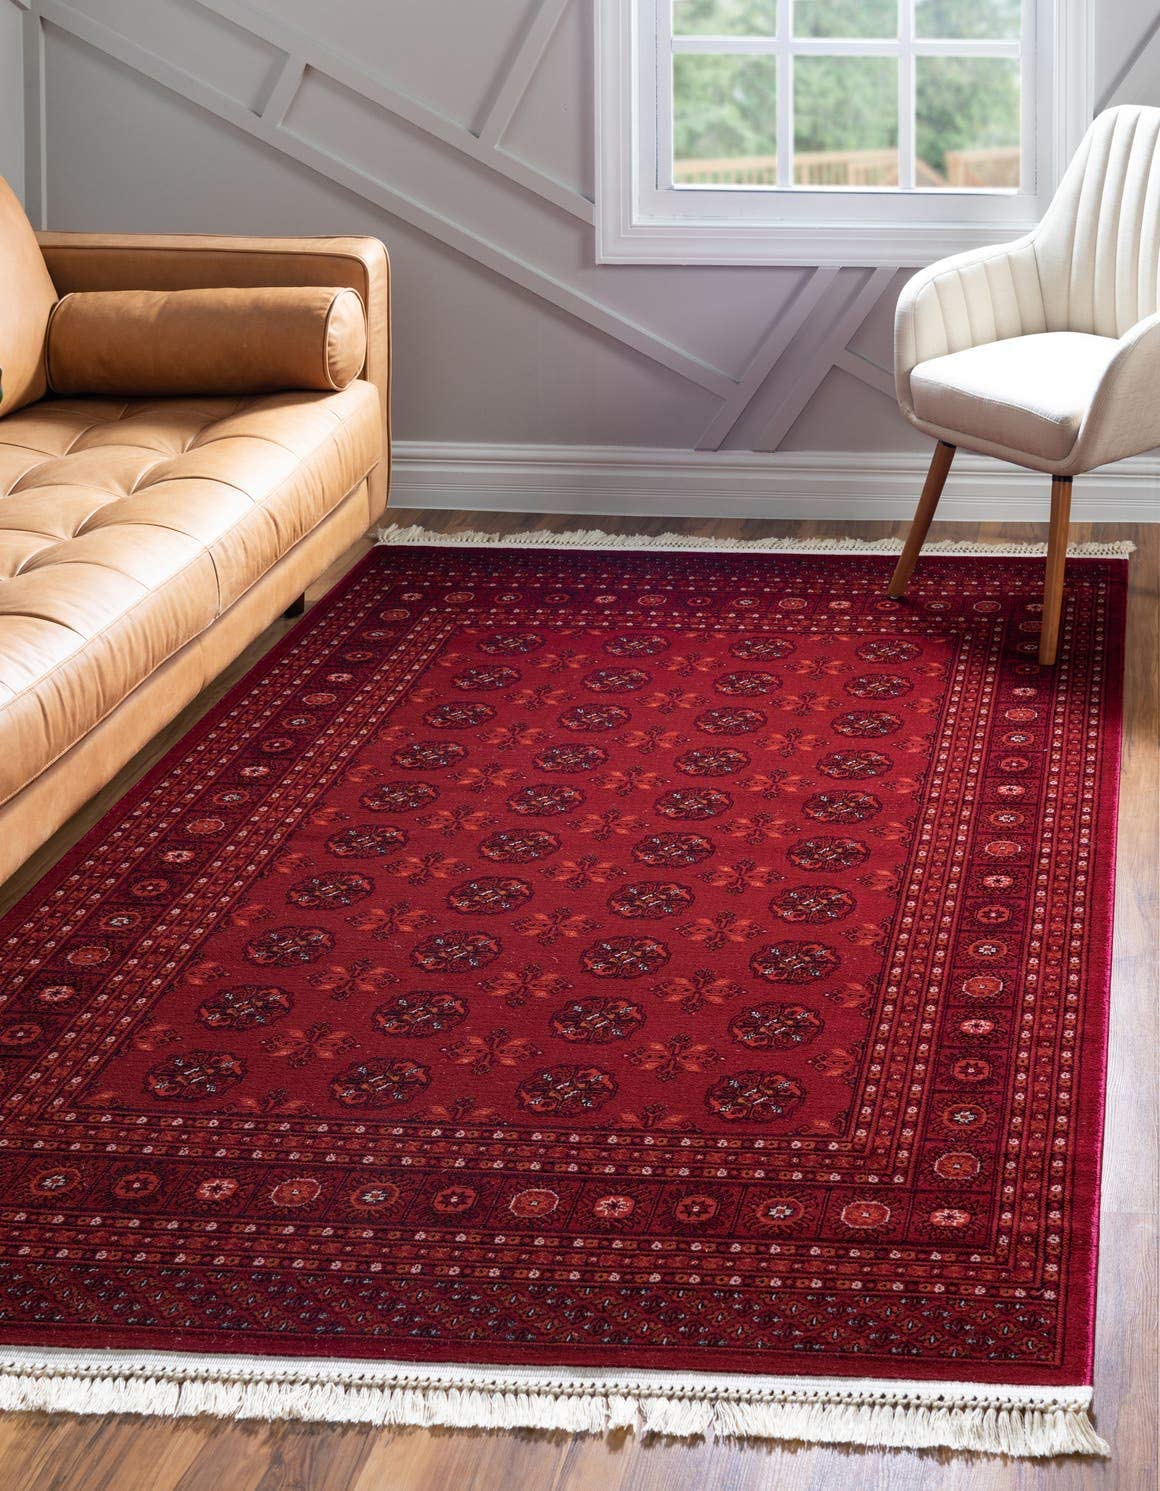 Unique Loom Tekke Collection Tribal Traditional Torkaman Red Area Rug 9 0 x 12 0